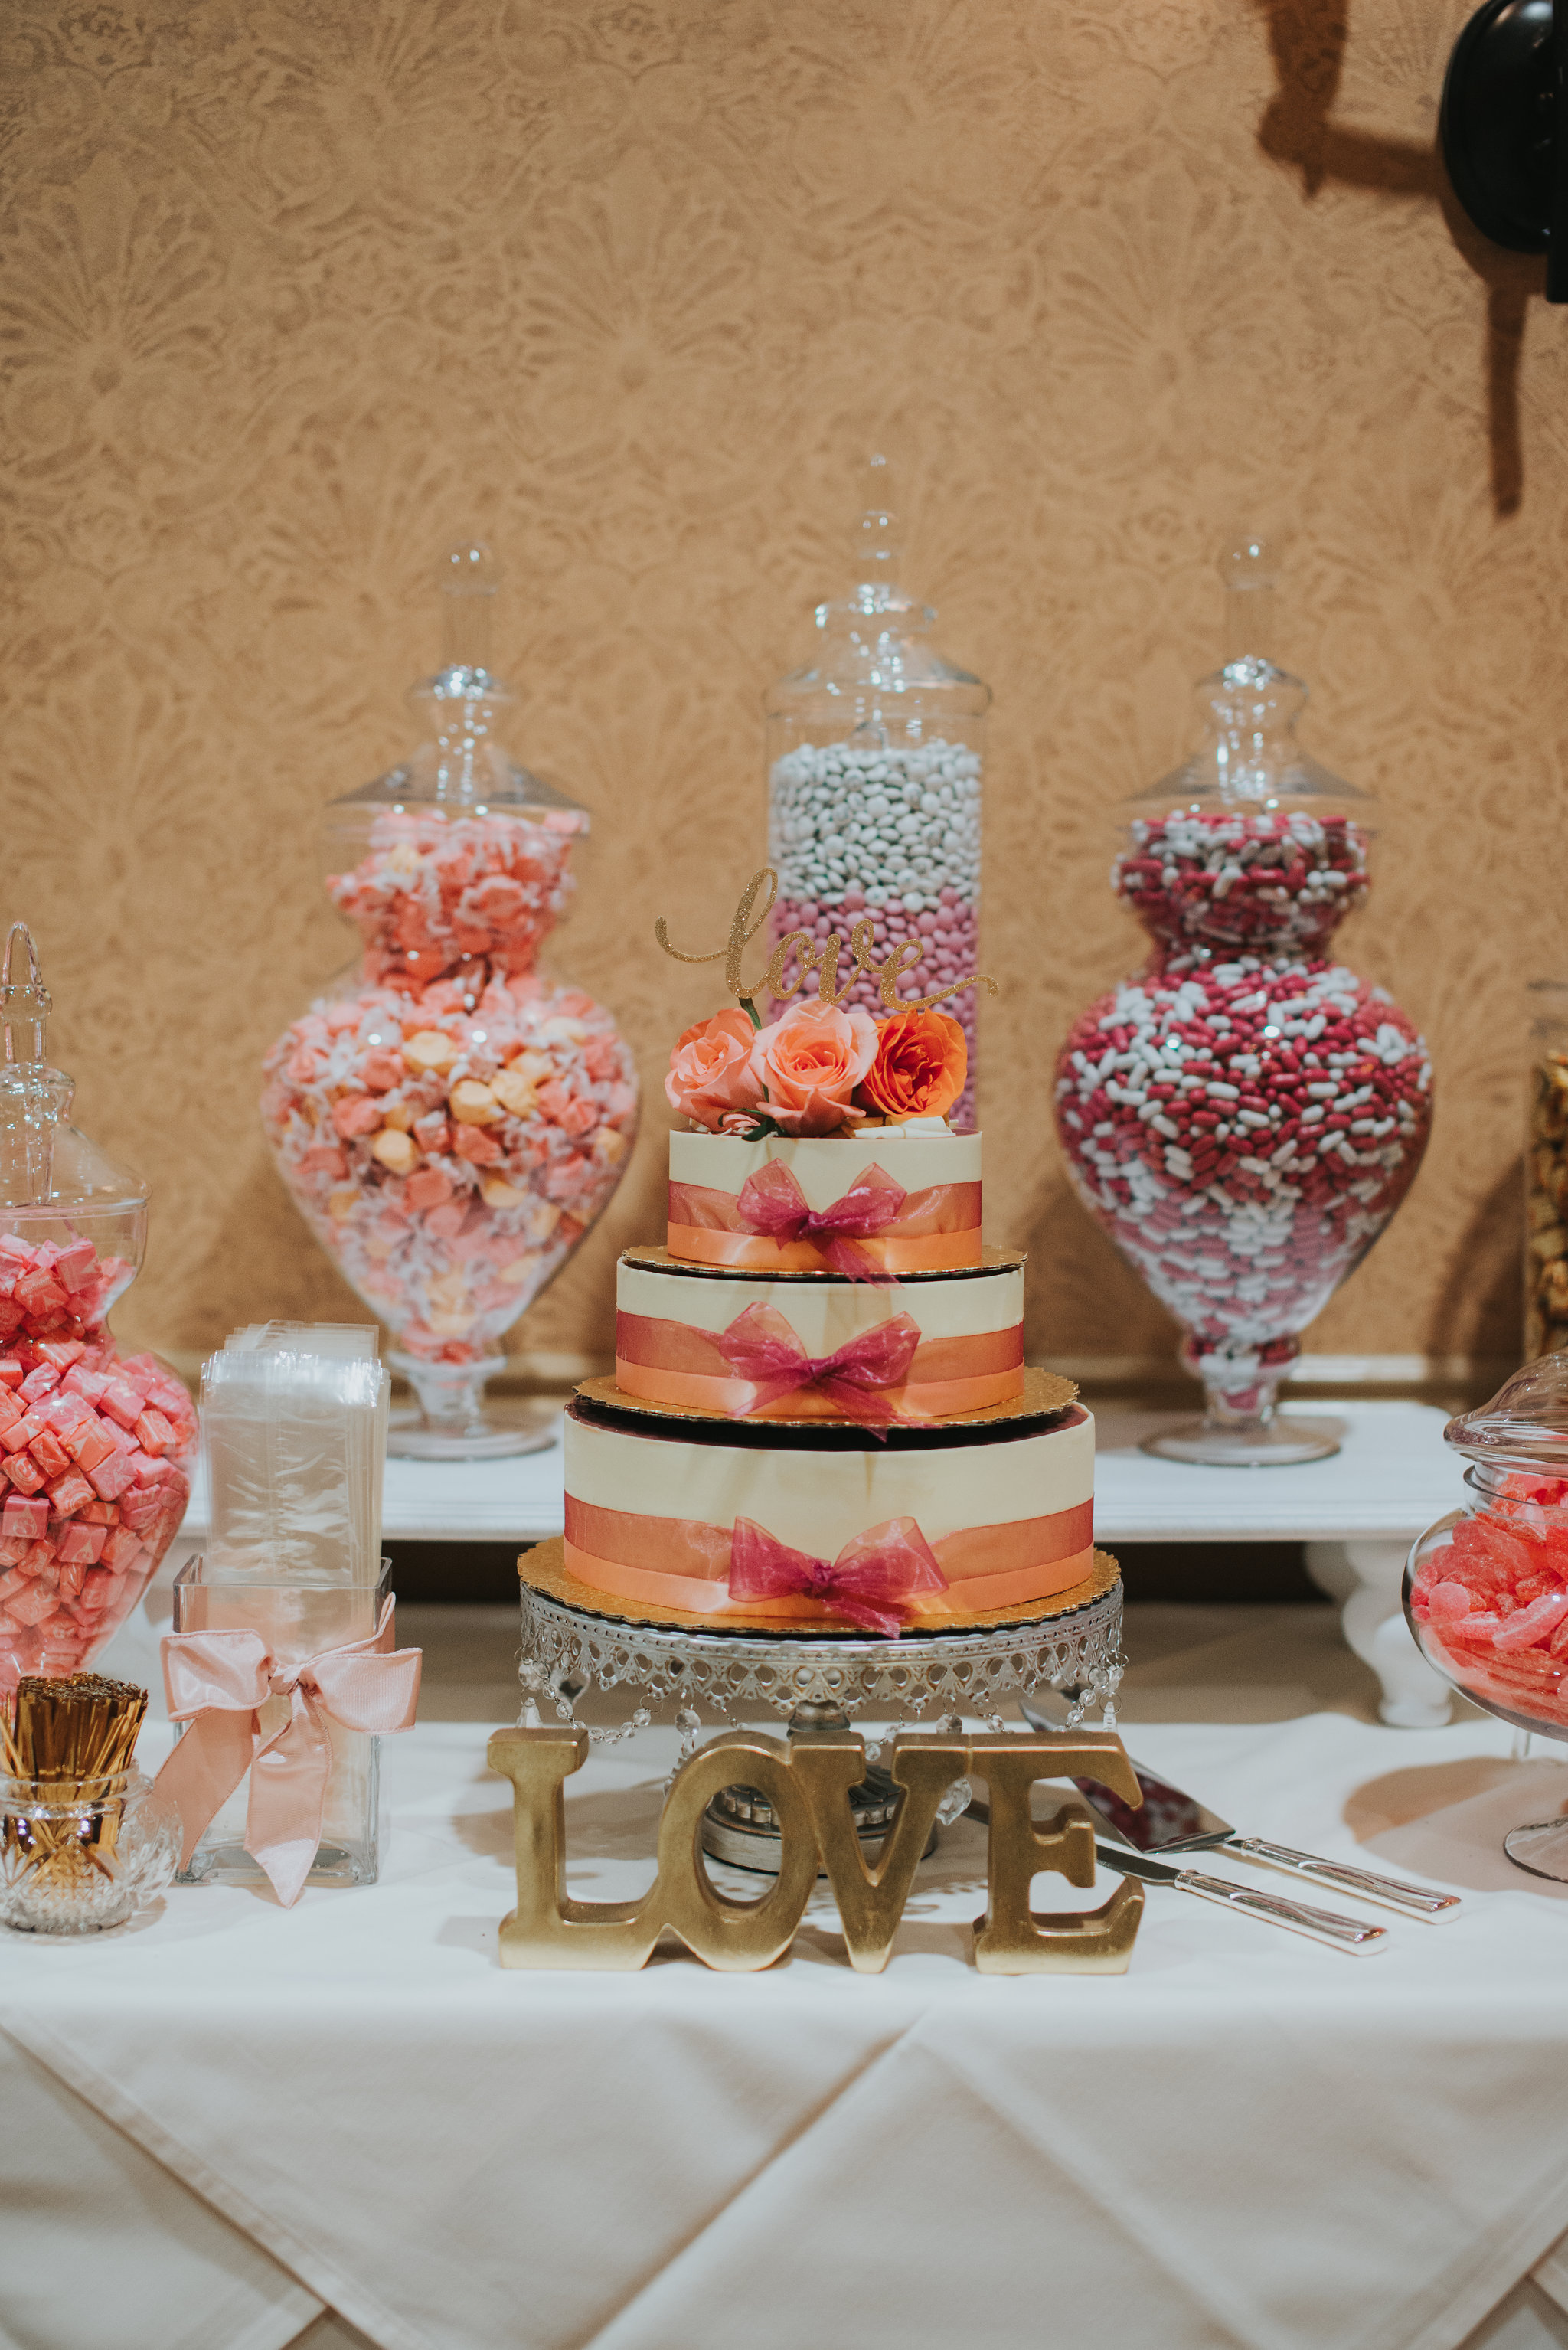 Vintners-Inn-Wedding-Dessert-Table-Rose-Ballroom.jpg